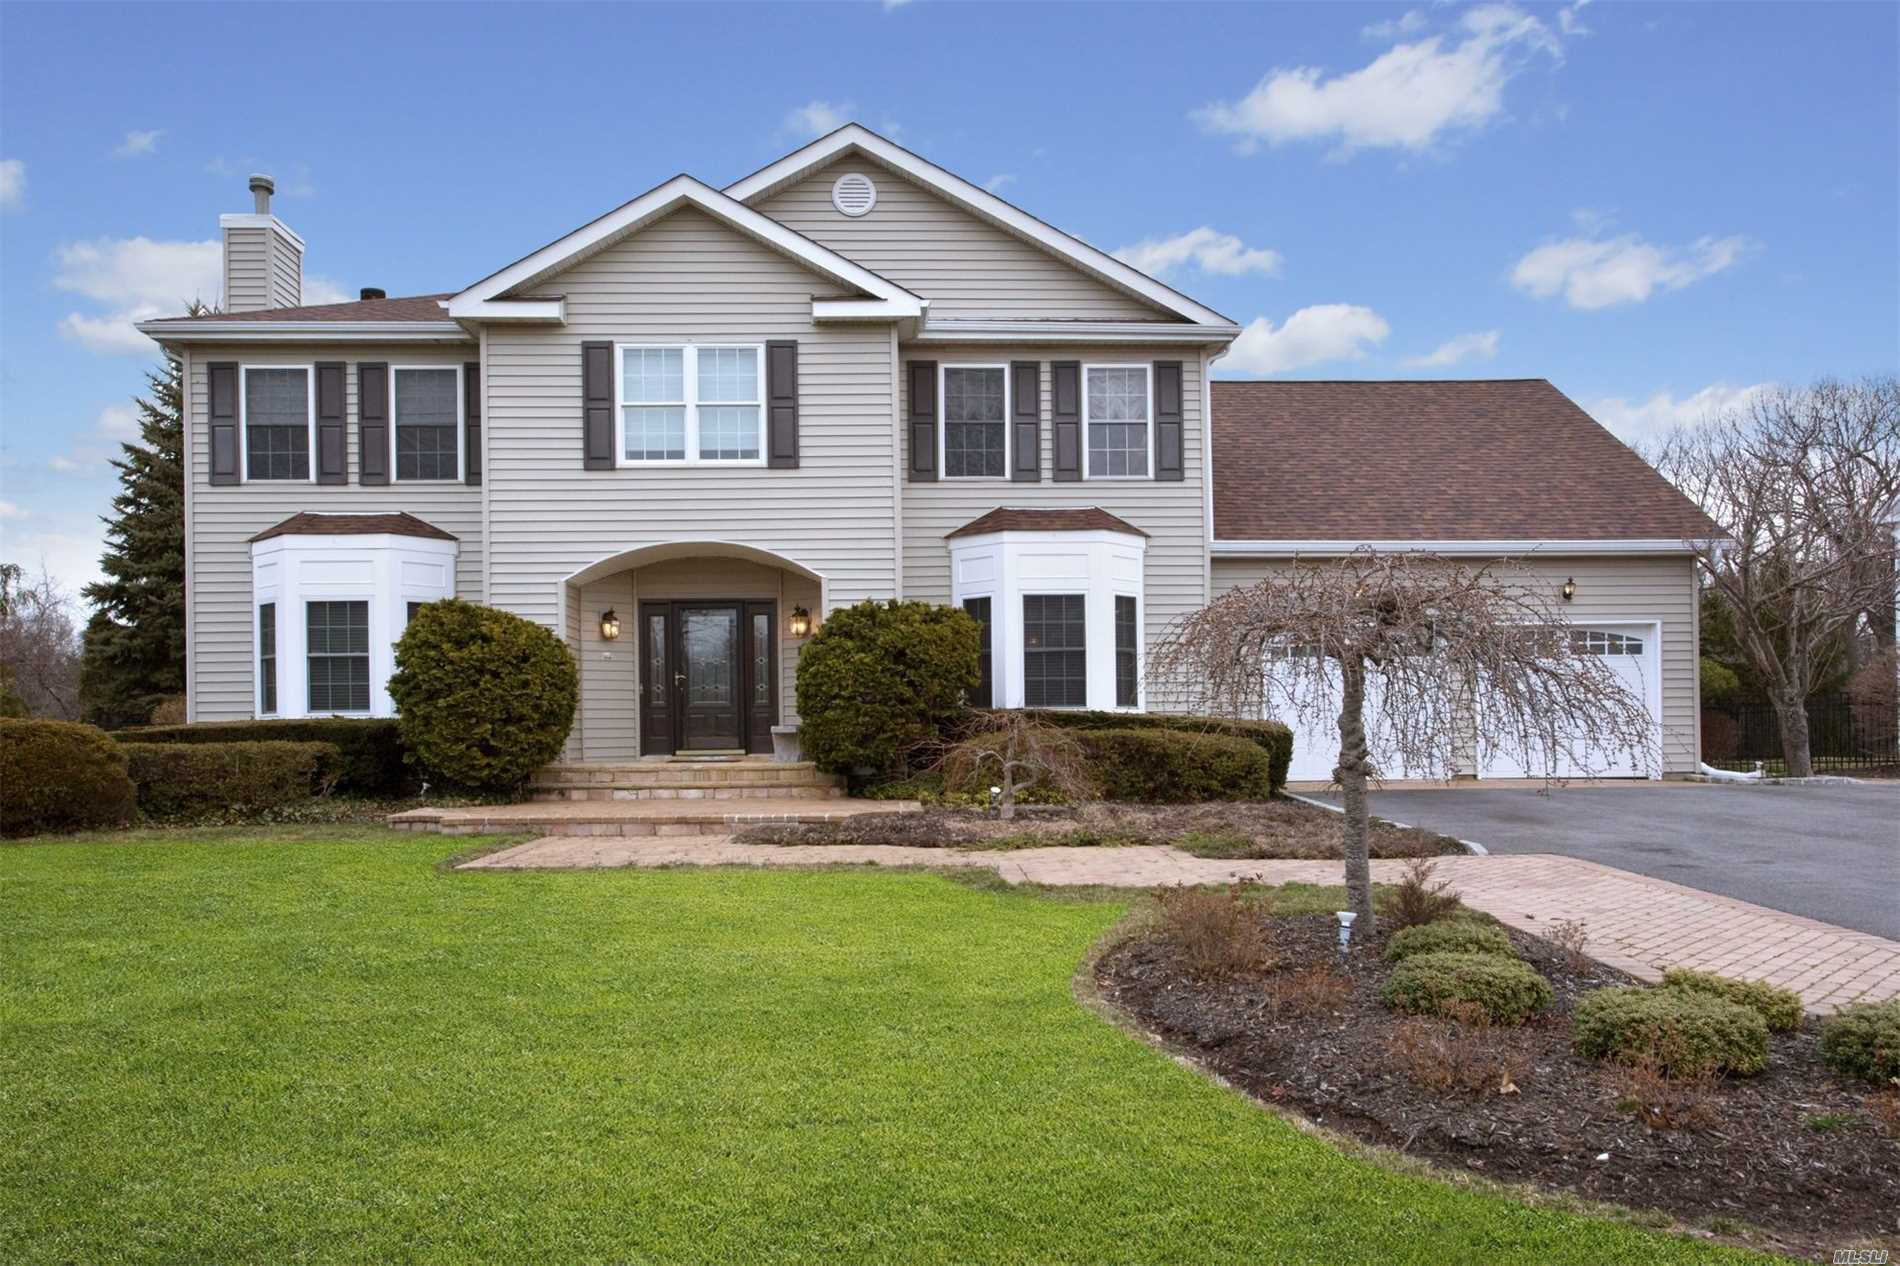 Desirable Birmingham Estates Cul De Sac ~ Center Hall Colonial on Private Half Acre. Grnd Lvl ~ Summer Kitchen, Au Pair Qtrs W/ Full Bath, Den, Office, Laundry, and Sliders to Patio. 1st Fl.~10' Ceilings, EF, Formal Dining Rm, Living Rm, Gourmet Eat In Kitchen w/ Butlers Pantry, Powder Rm, Great Rm w Fireplace & Sliders to Deck. 2nd Fl ~ 3 Large Bedrooms, Full Bath, Master Ste w 3 WICs & Lndry. Heated Salt Water Pool w/ Hot Tub, CAC and CVAC, Whole House Generator - Entertainers Dream! Must See!